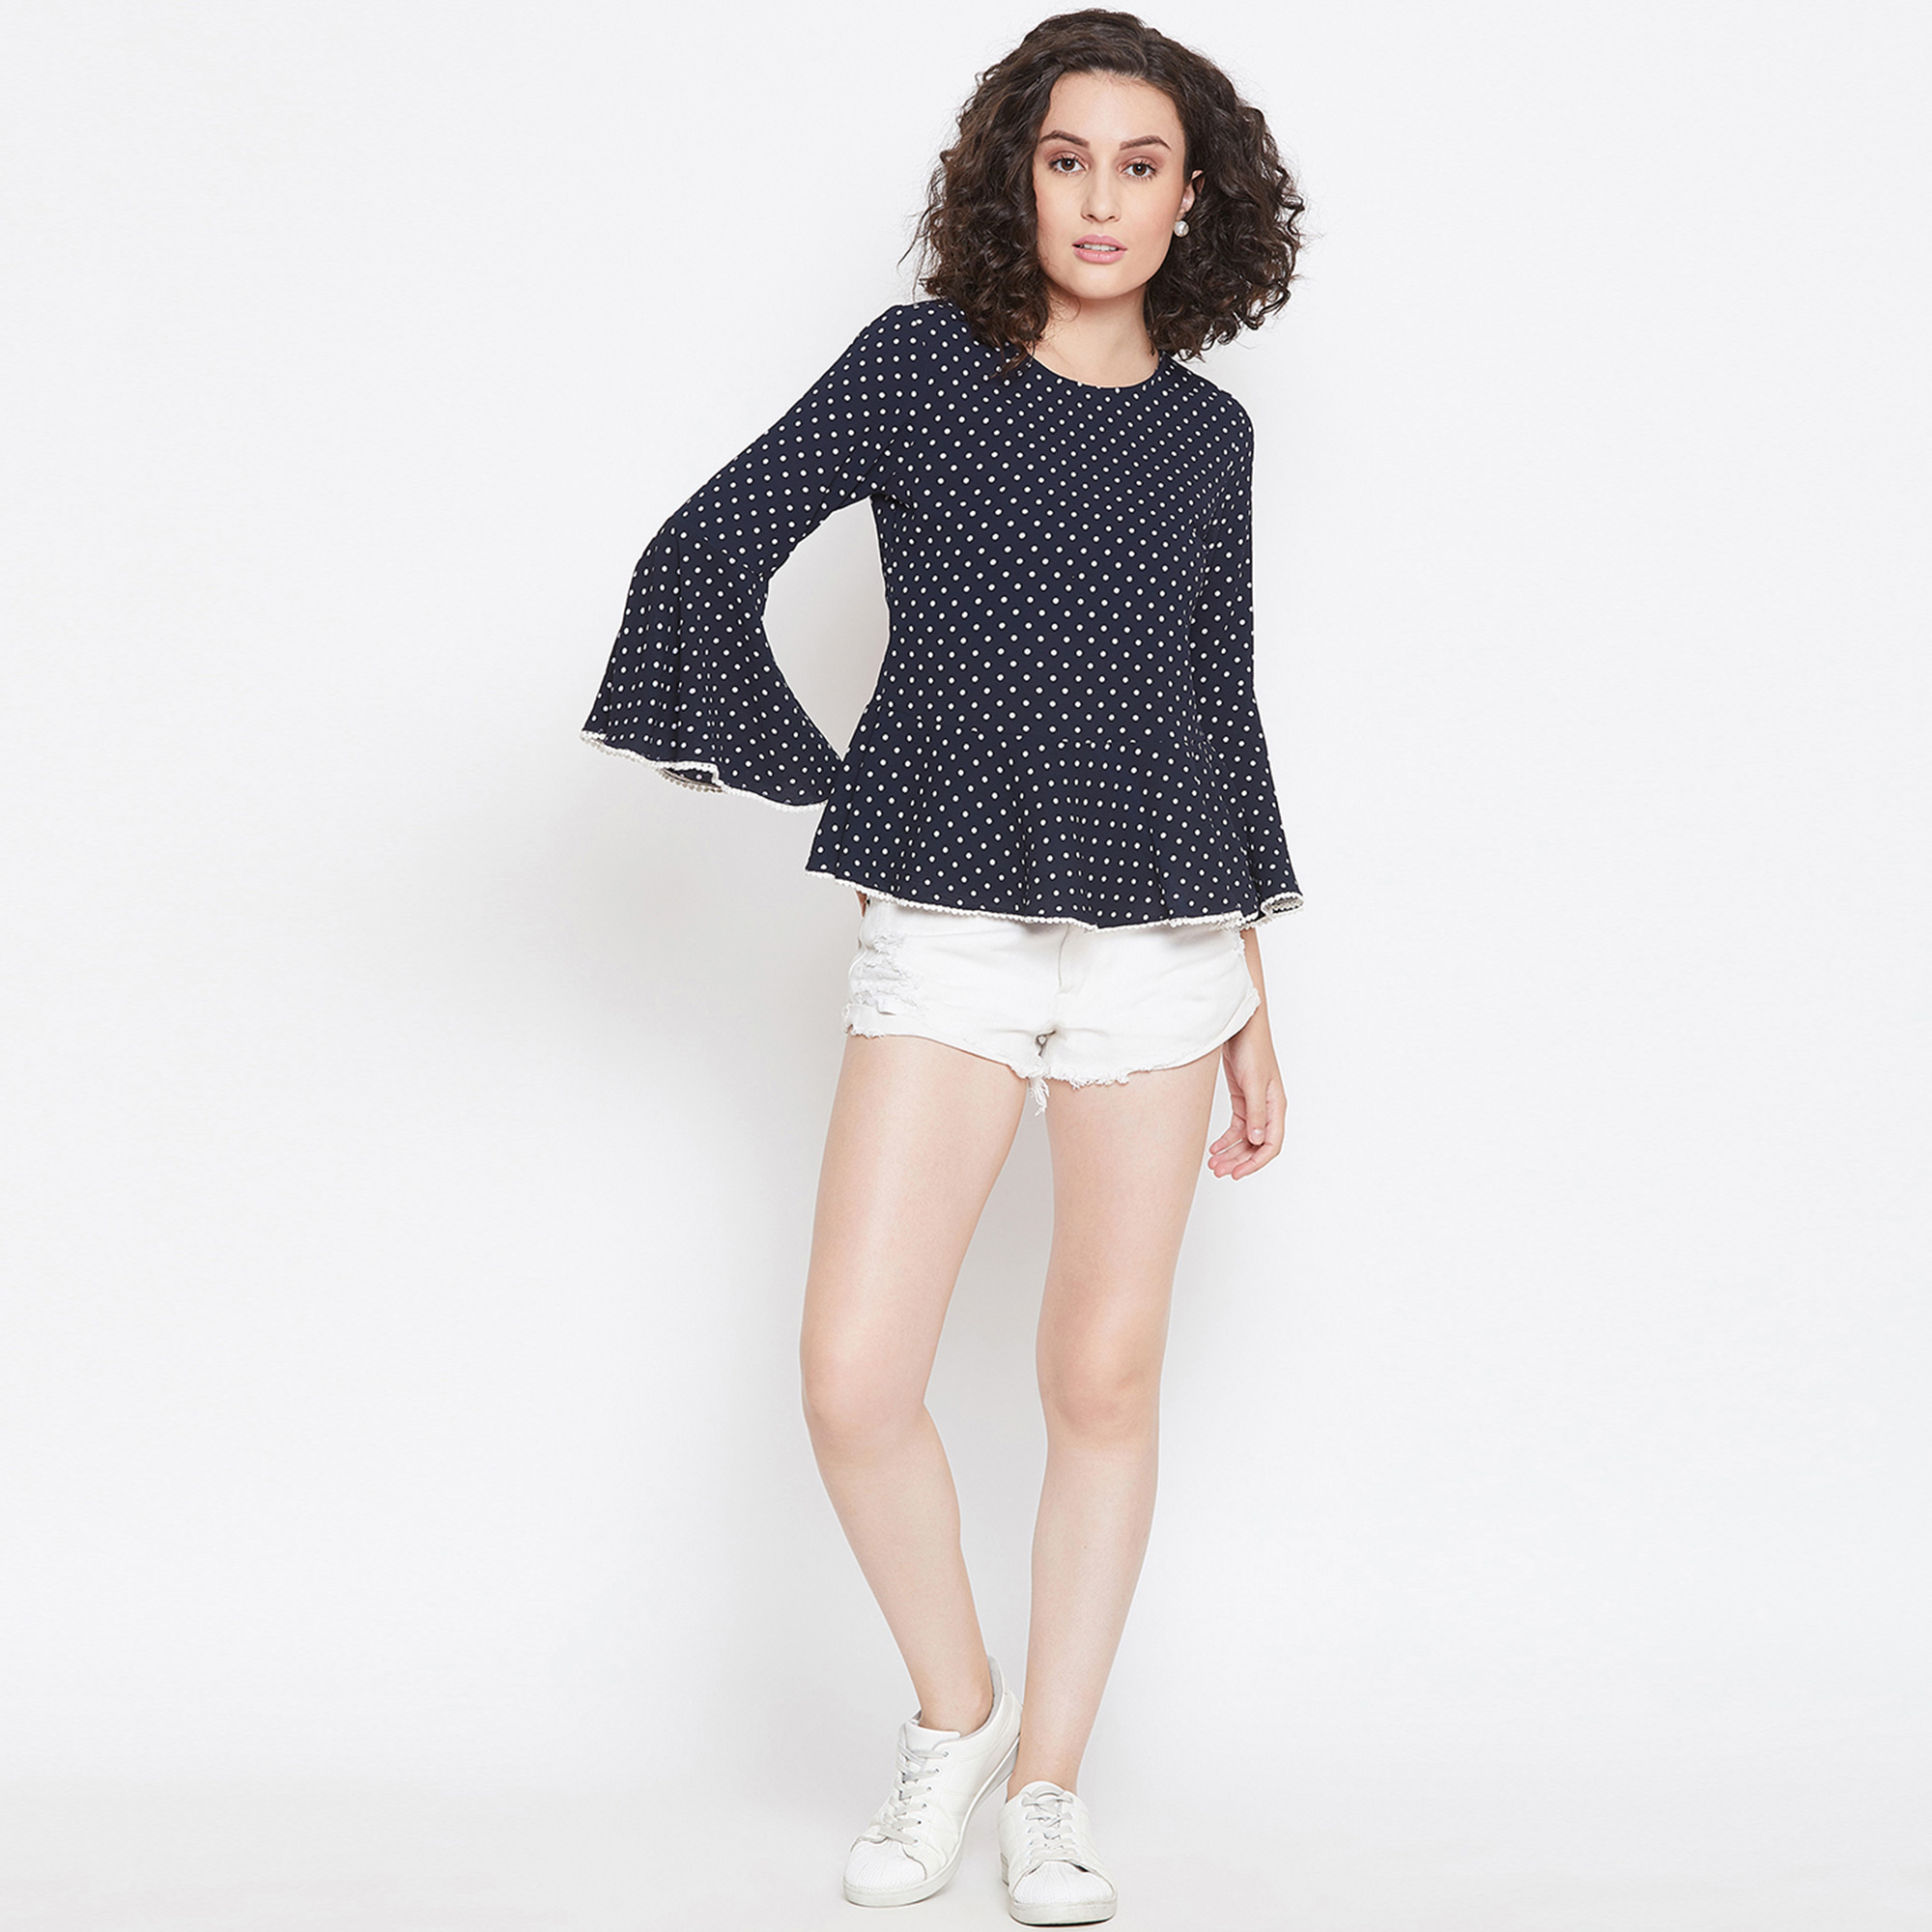 Ethnic Navy Blue Casual Wear Polka Dot Peplum Style Crepe Top With Lace Detailing